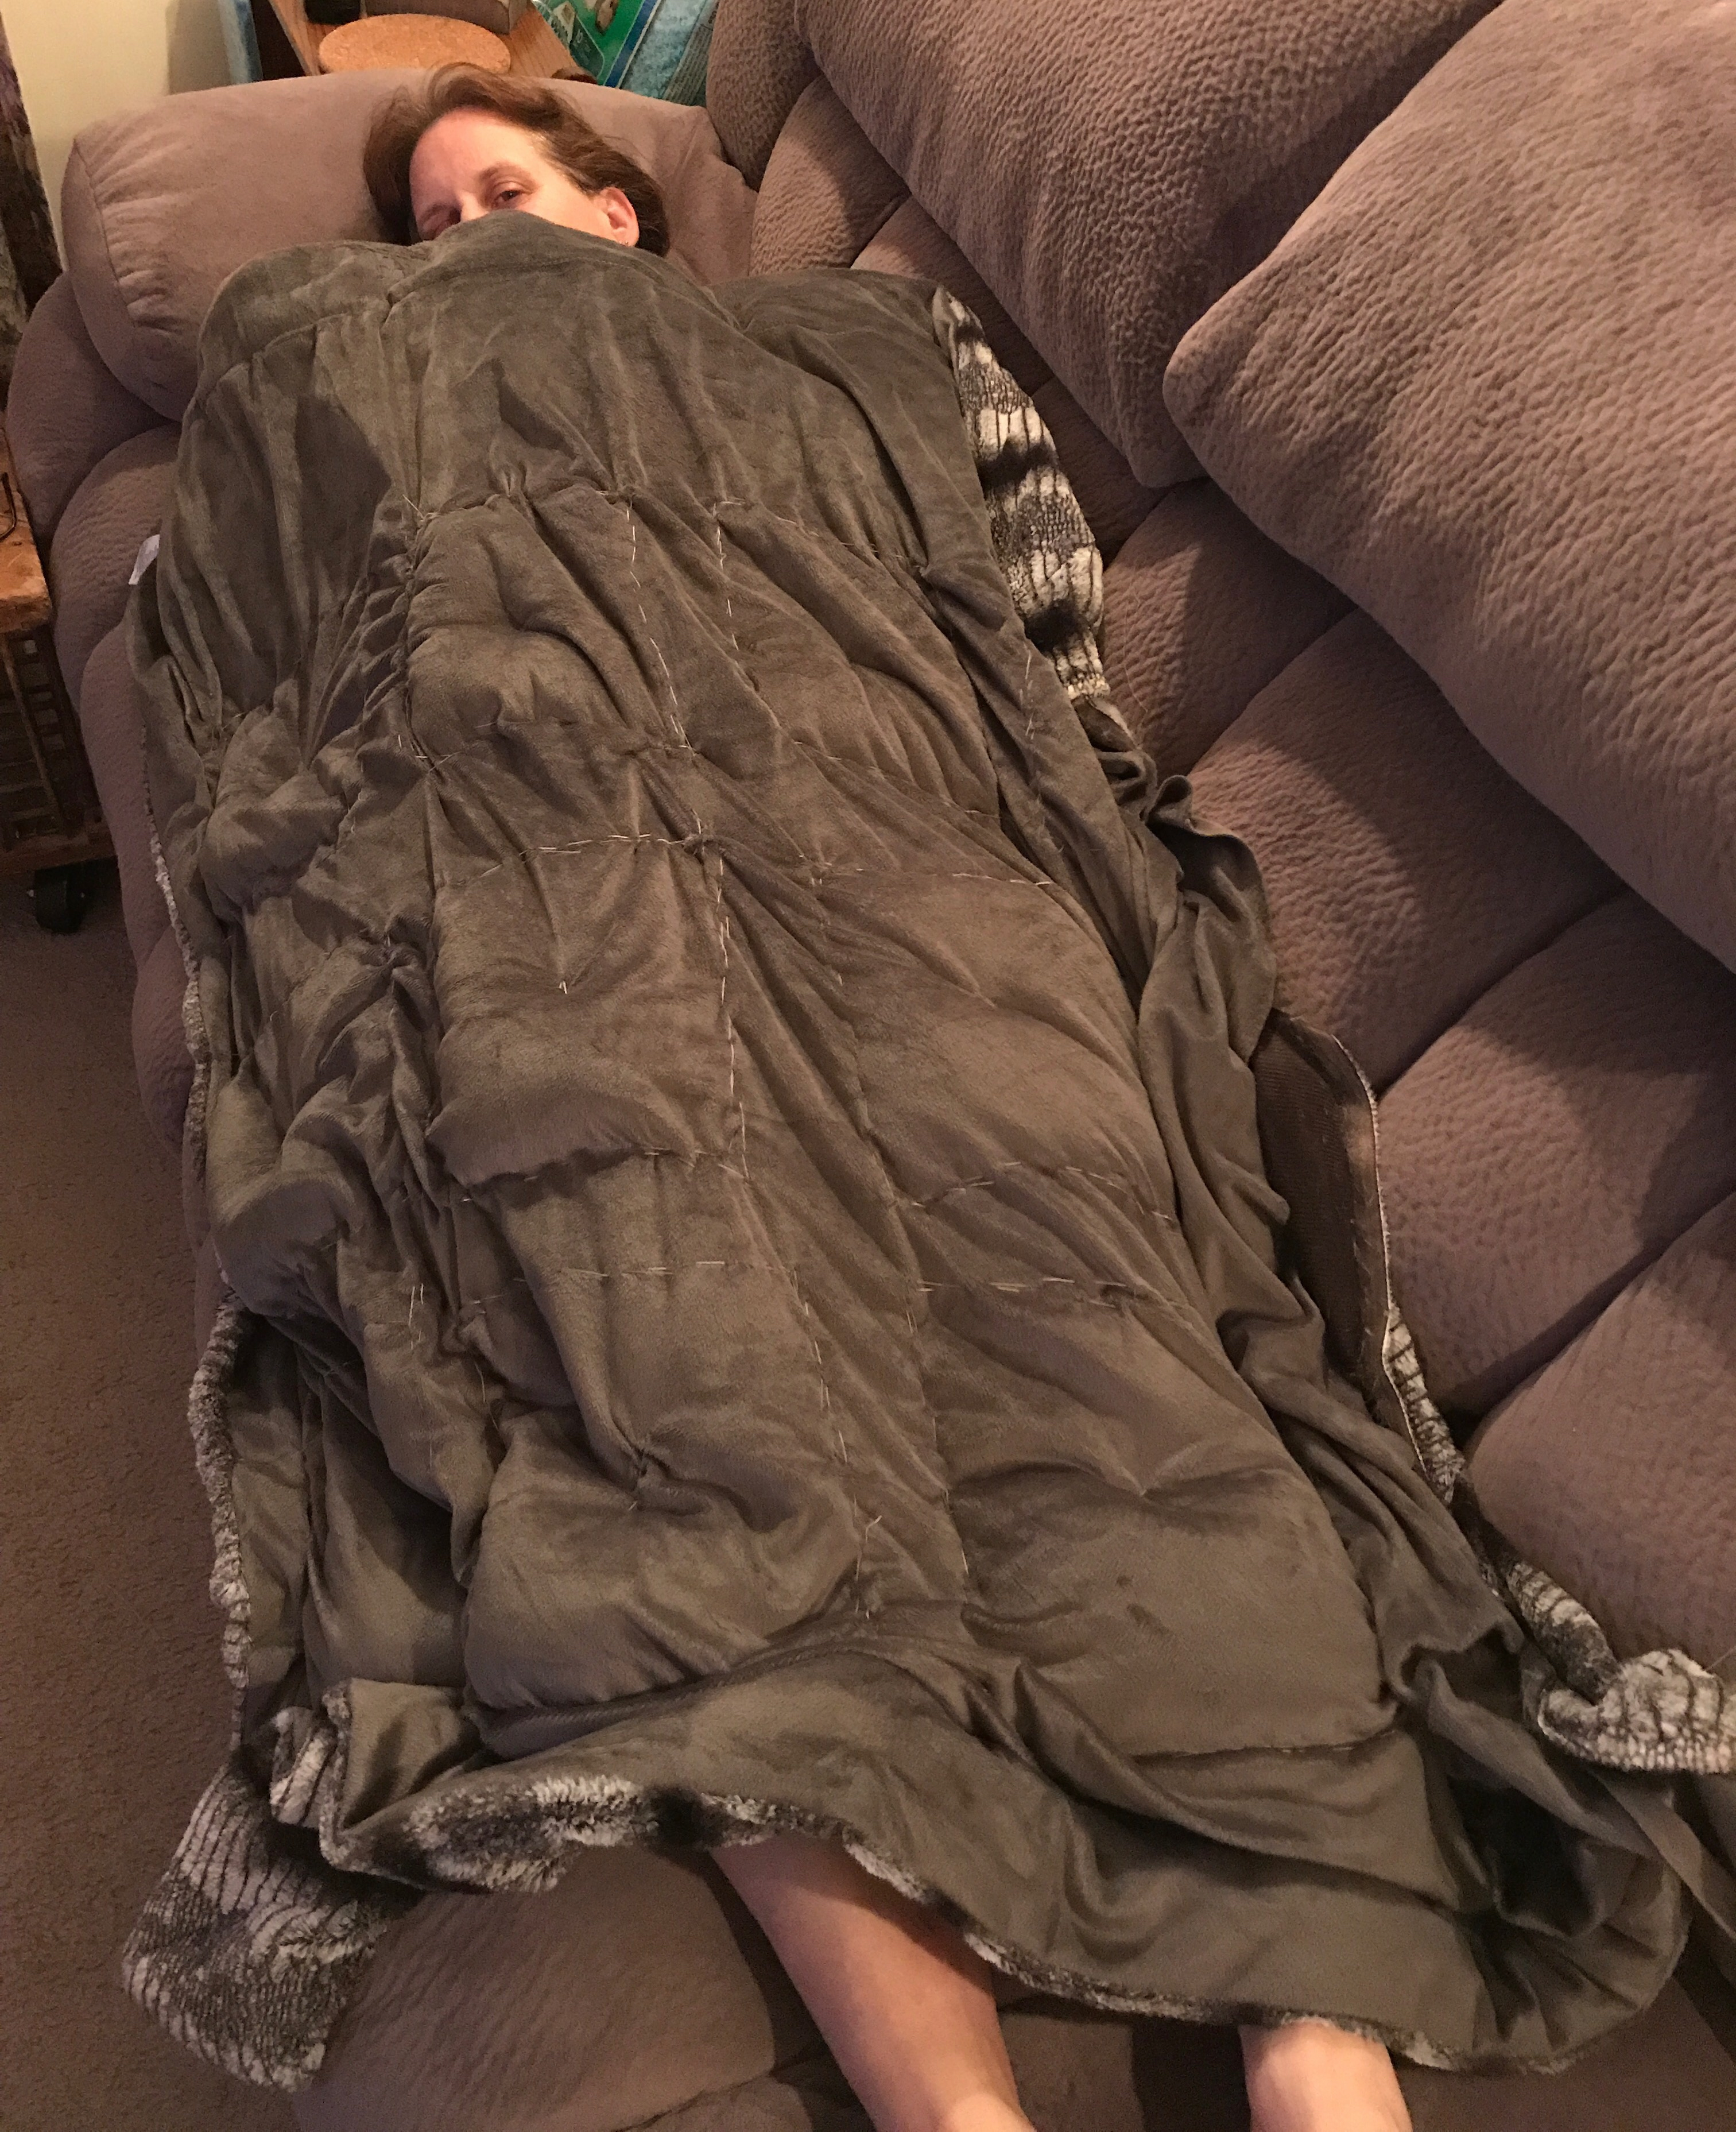 Weighted Blanket Wikipedia